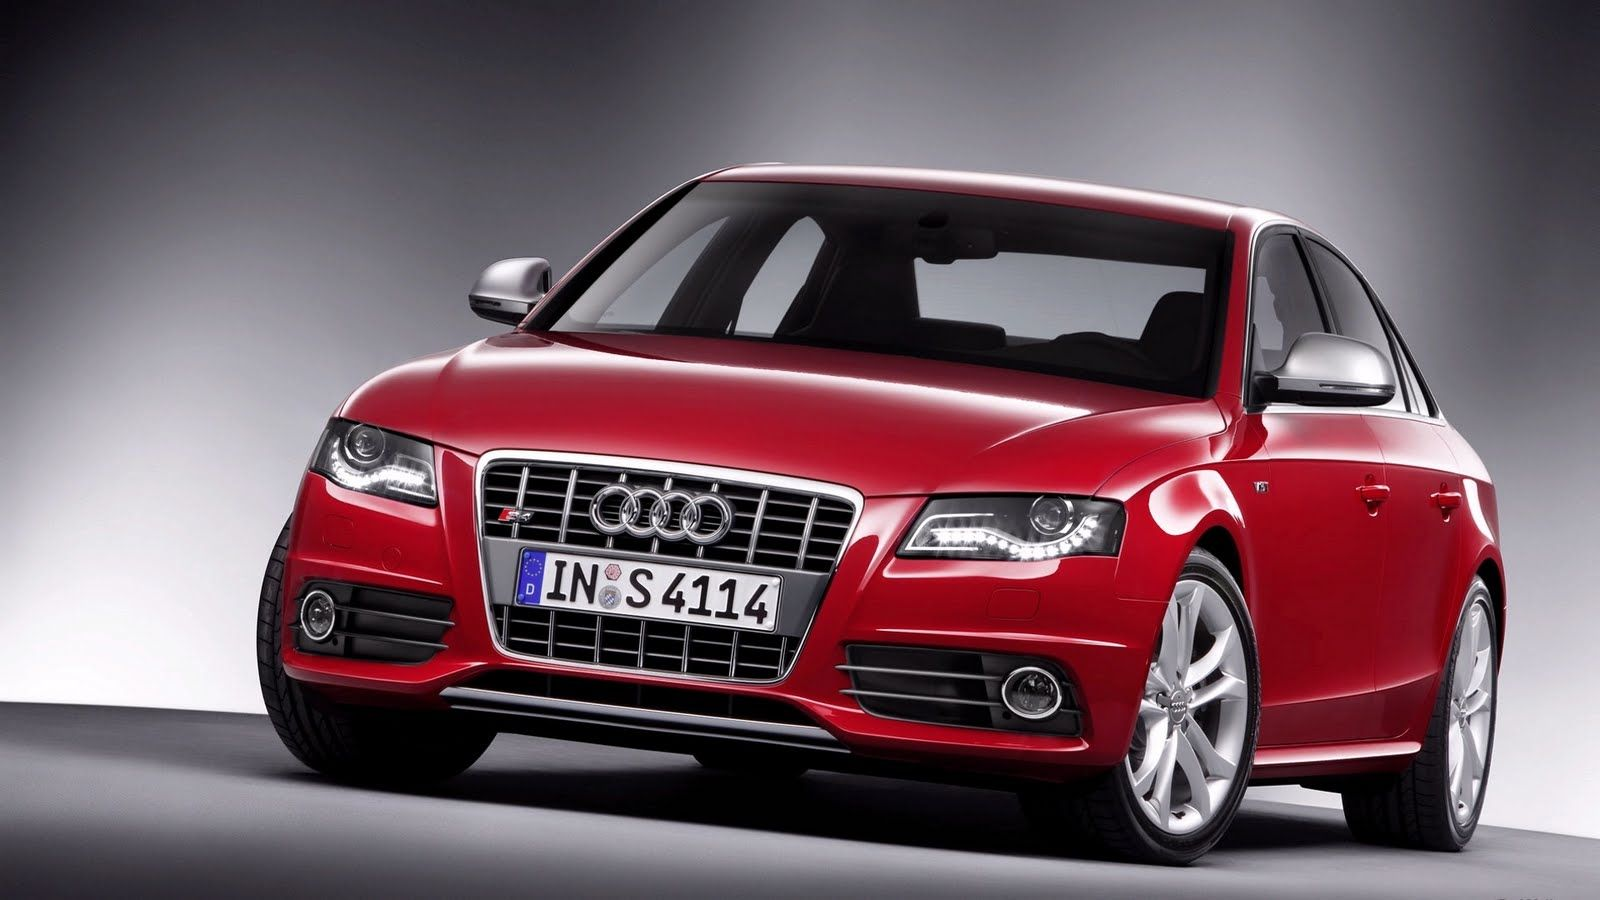 Audi Cars Wallpapers Hd Free Download Just Another Entertainment Source D Audi S4 Audi Cars Car Wallpapers